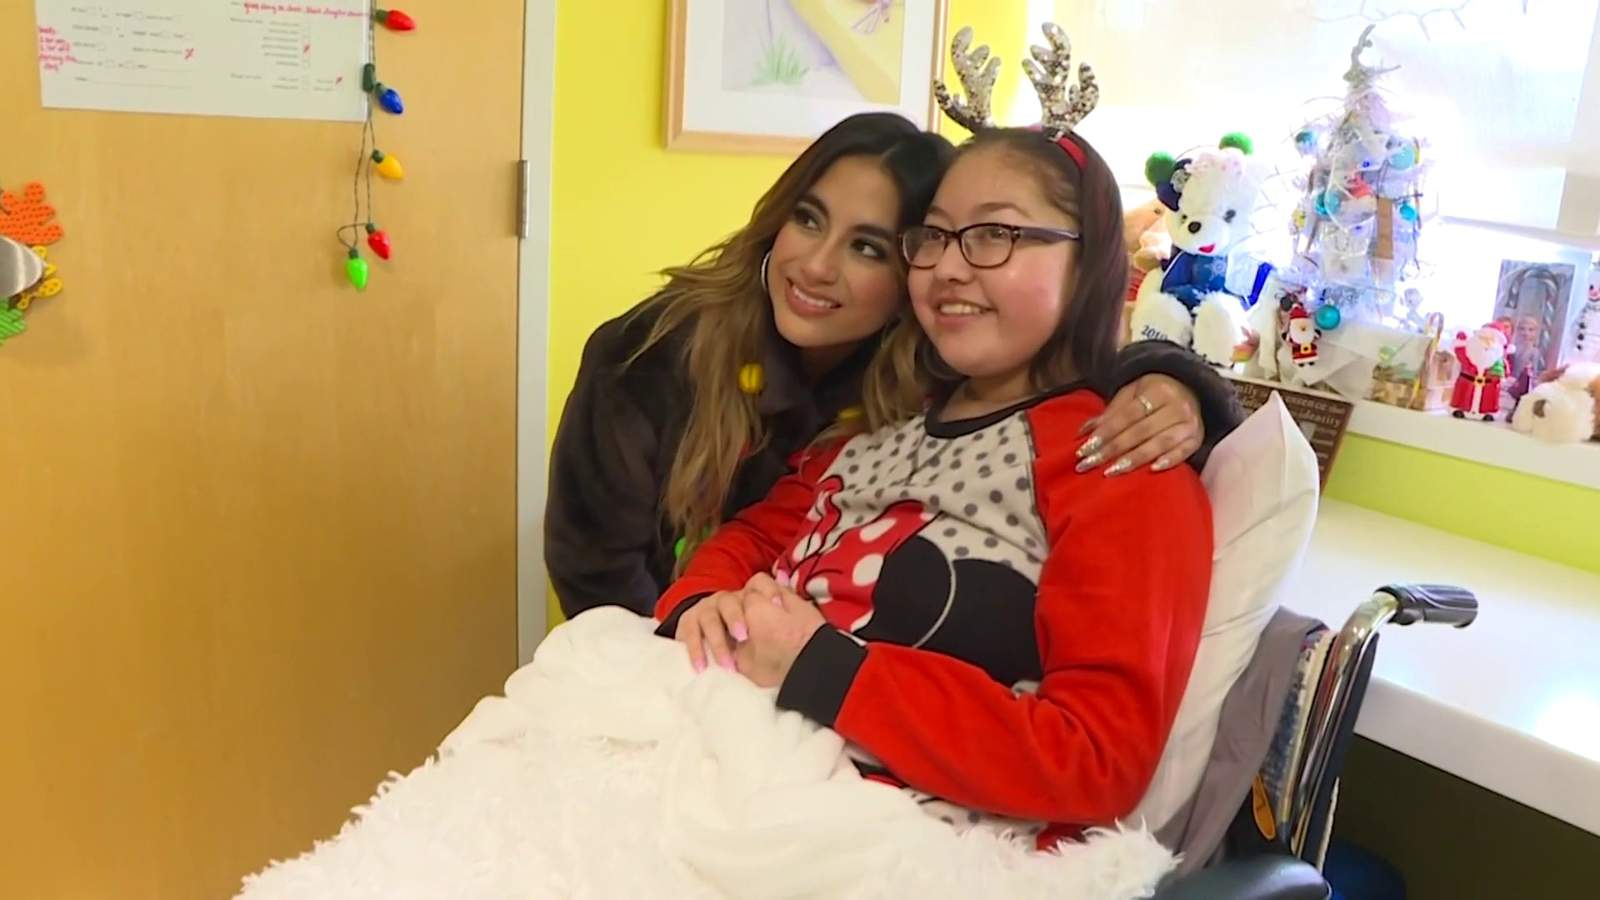 Singer Ally Brooke back home and spreading holiday cheer